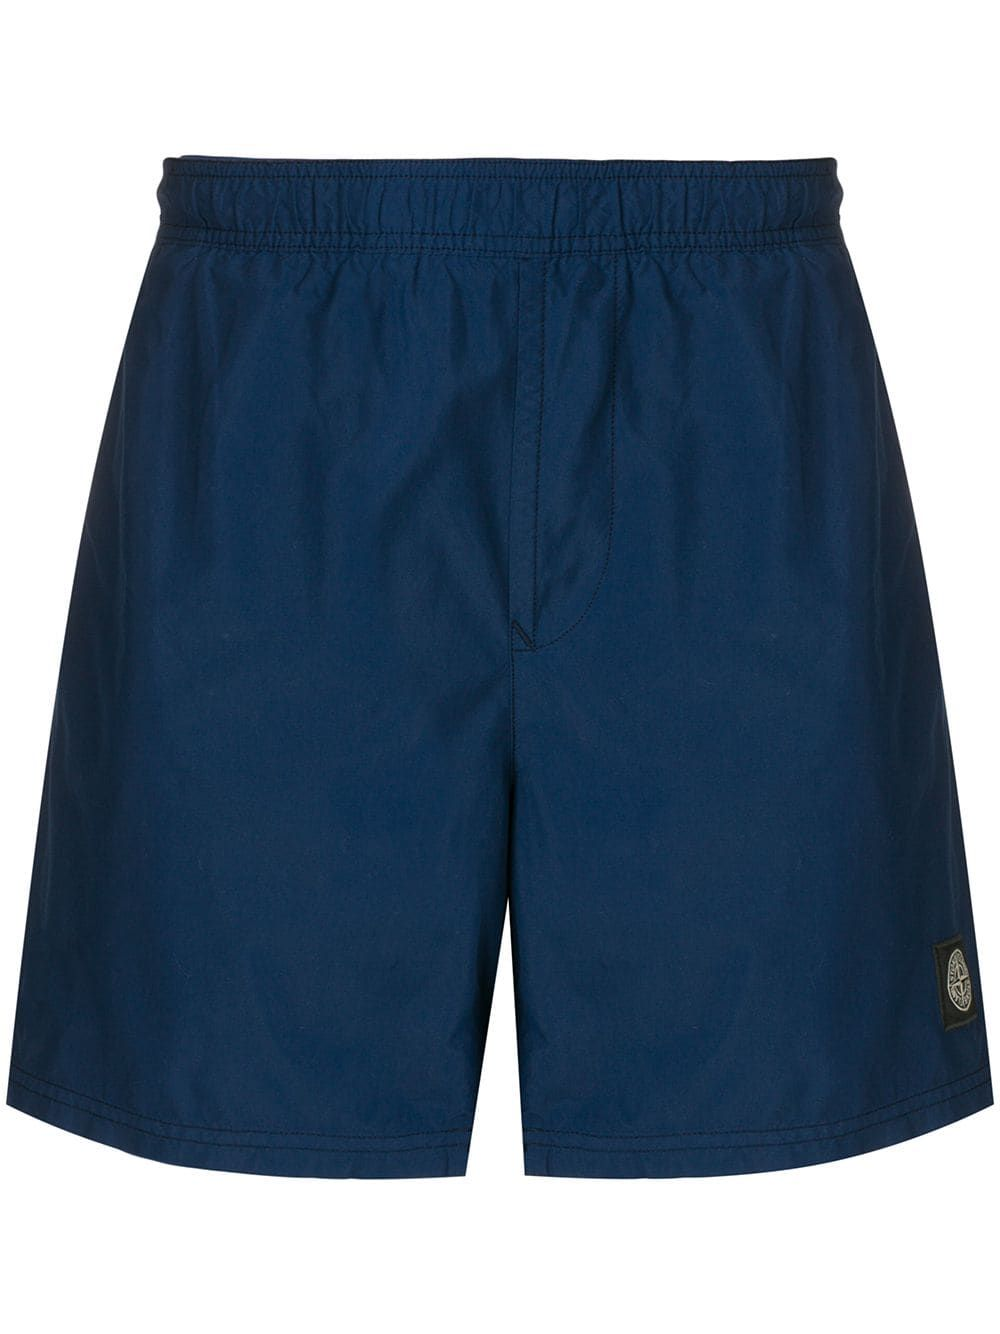 b715d82a91 Stone Island logo patch swim shorts - Blue in 2019 | Products ...